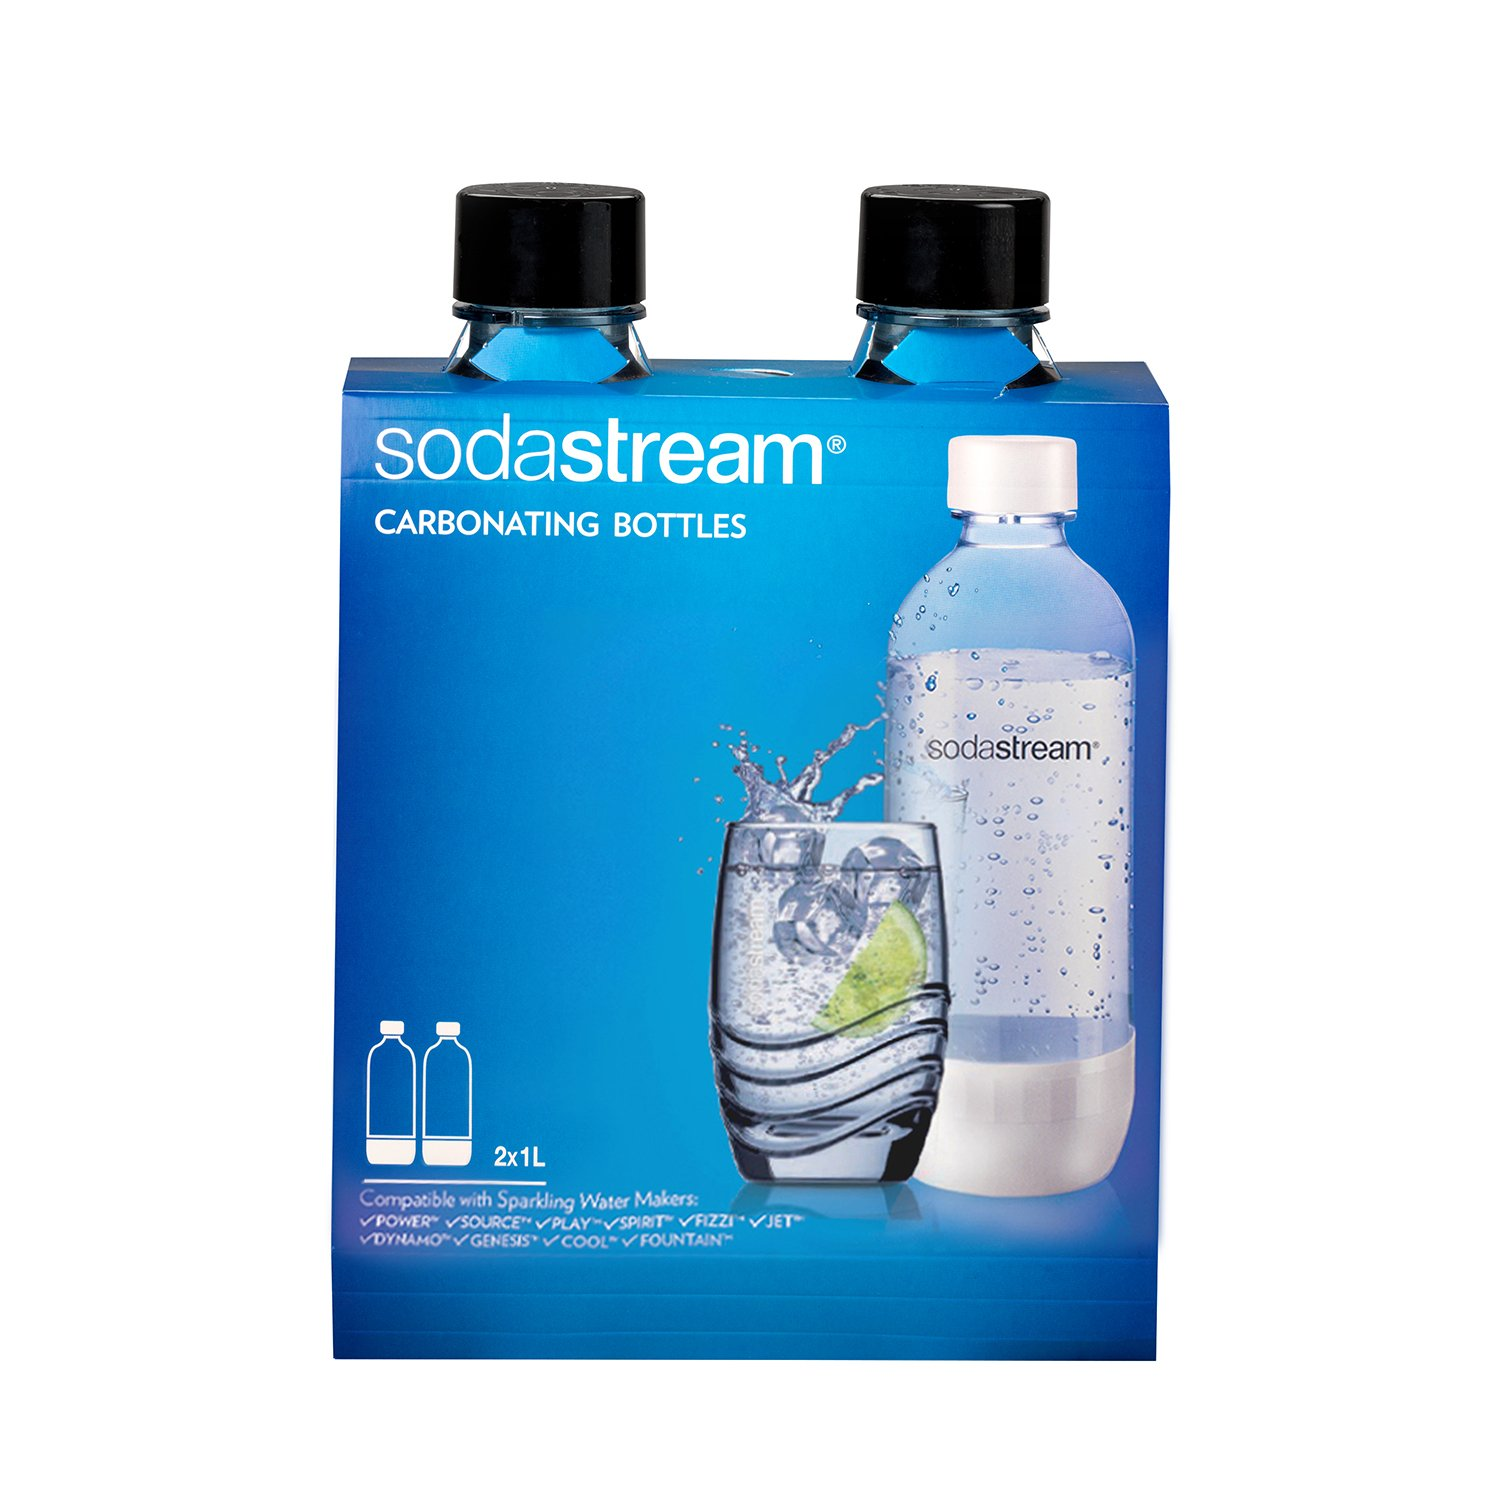 Sodastream 1l Carbonating Bottles- Black (Twin Pack) by SodaStream (Image #2)